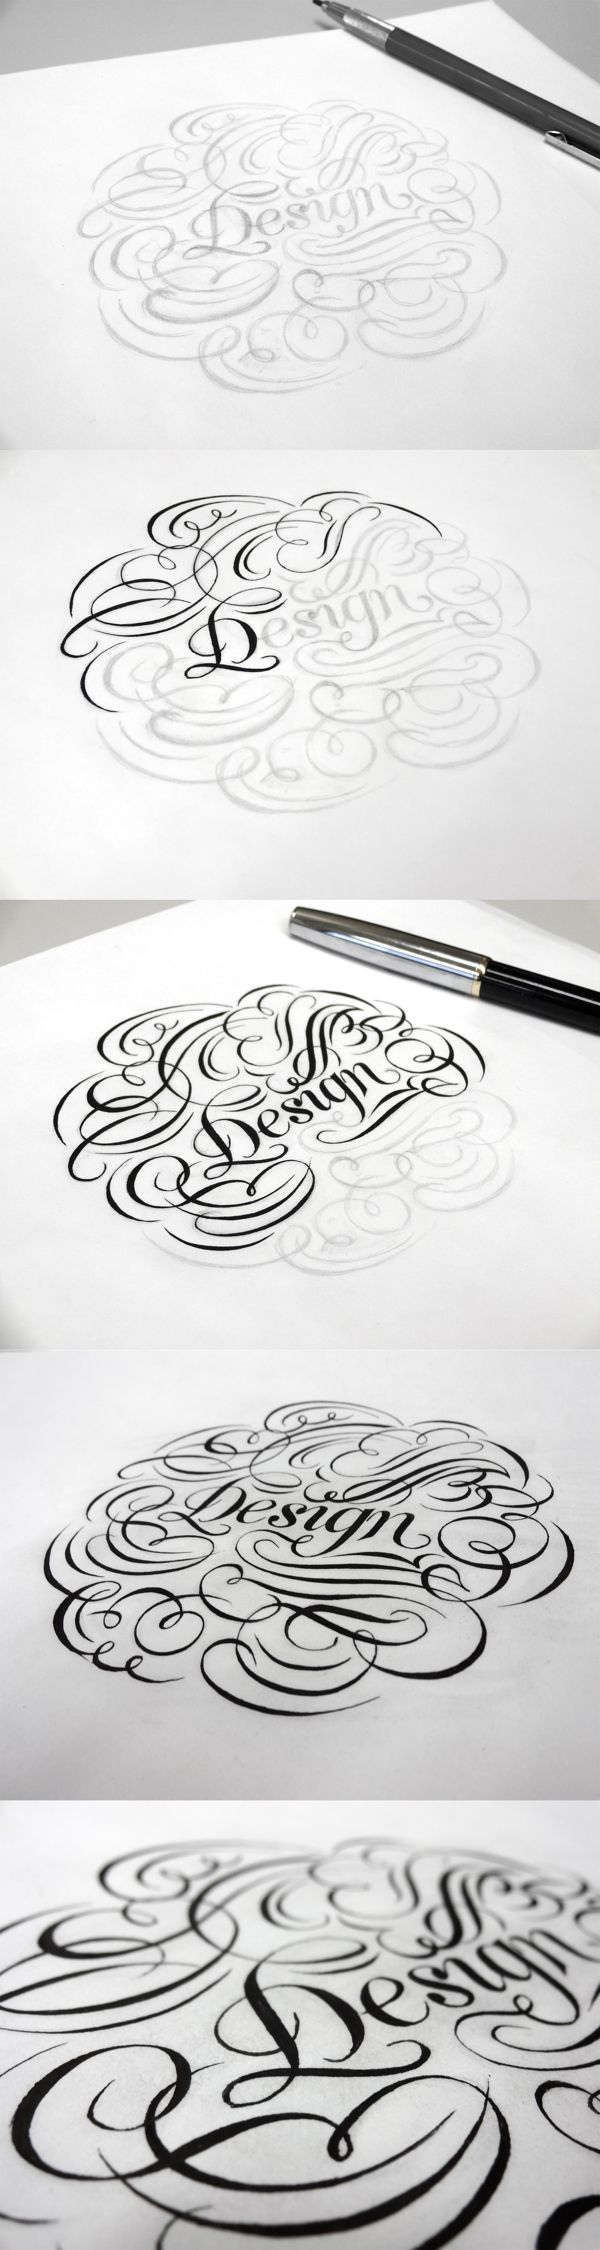 Hand Lettering 3 by Anh vu, via Behance